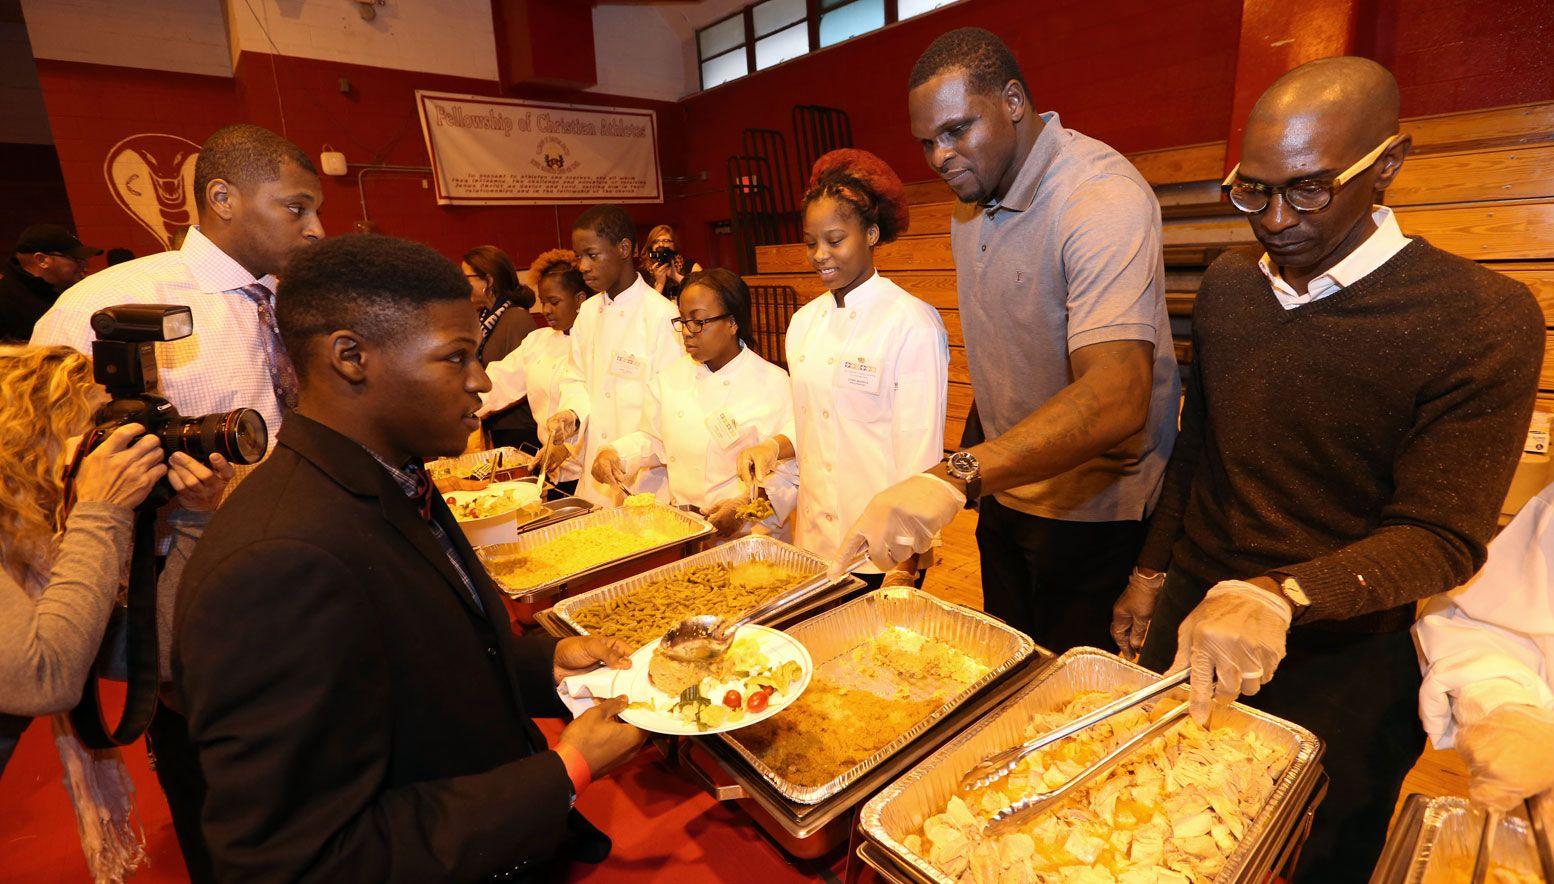 Zach Randolph and Elliot Perry serving food